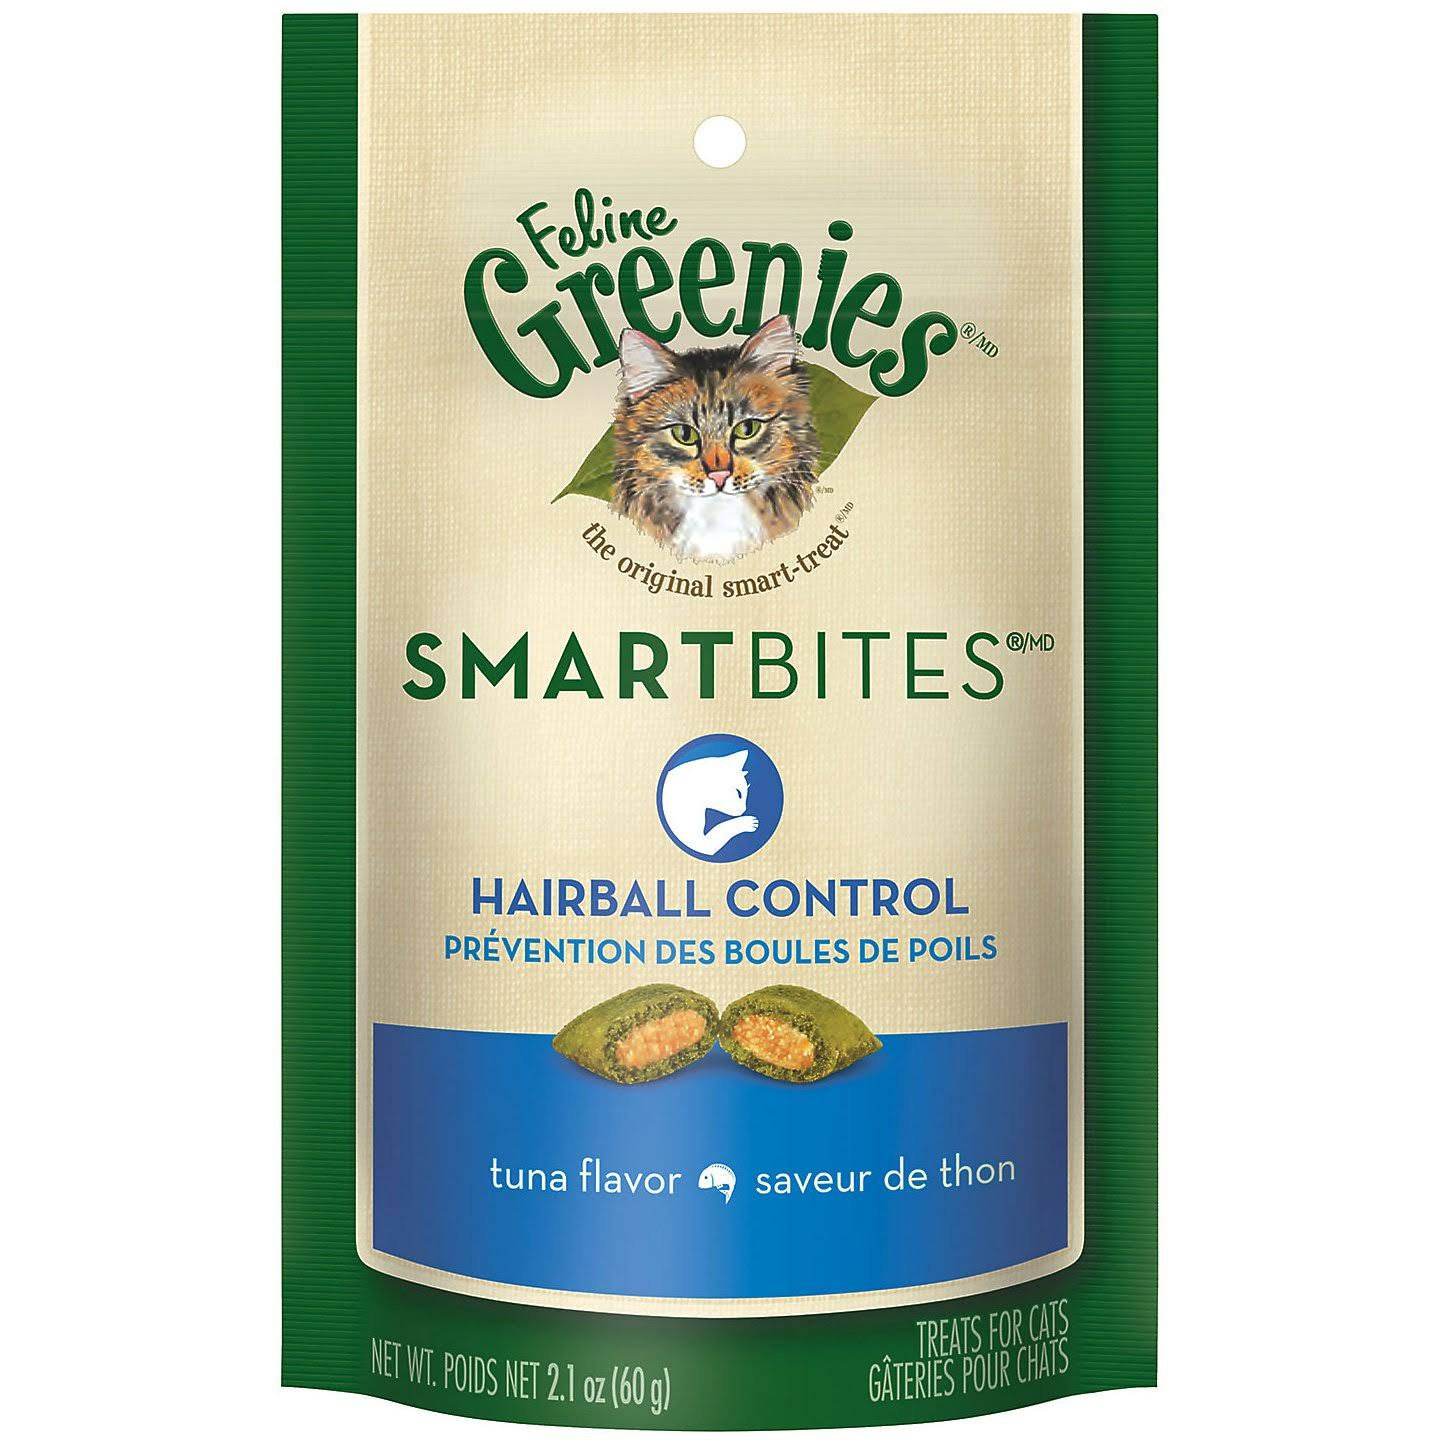 Greenies Feline Smartbites Hairball Control Cat Treats - Tuna, 2.1oz